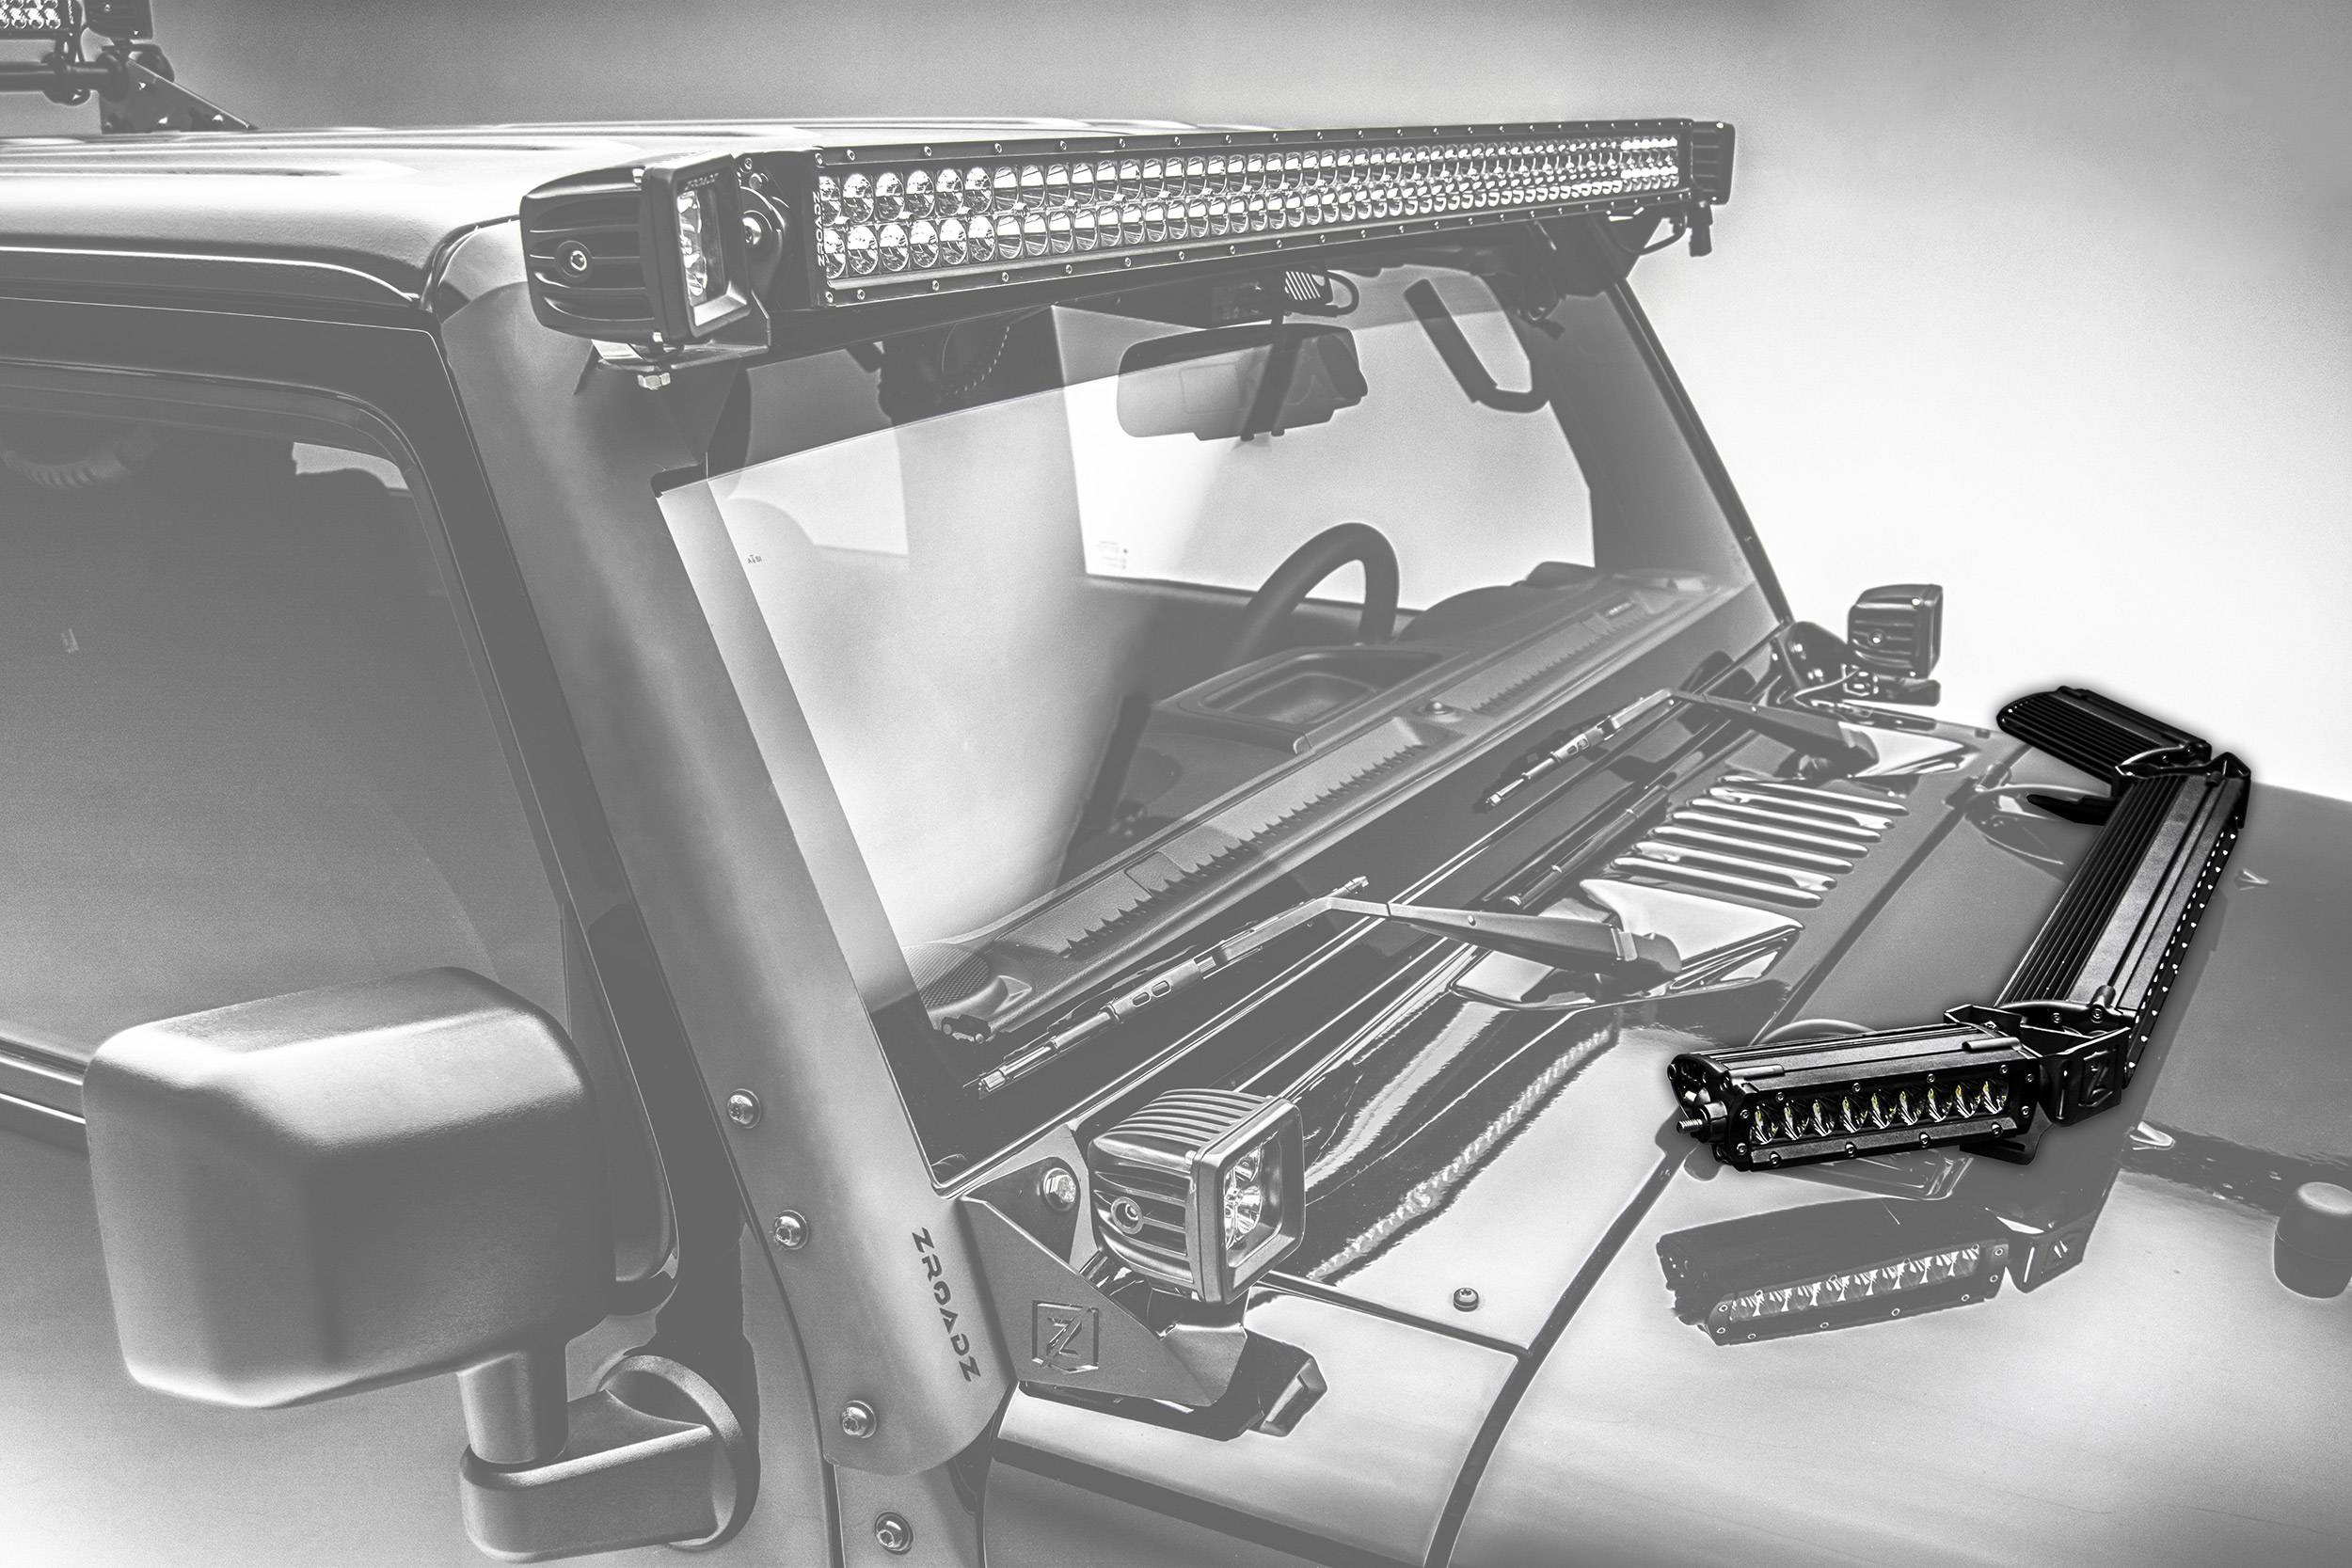 ZROADZ                                             - 2007-2018 Jeep JK Hood Hinge LED Kit, Incl. (1) 20 Inch and (2) 6 Inch LED Single Row Slim Light Bars - PN #Z344813-KIT